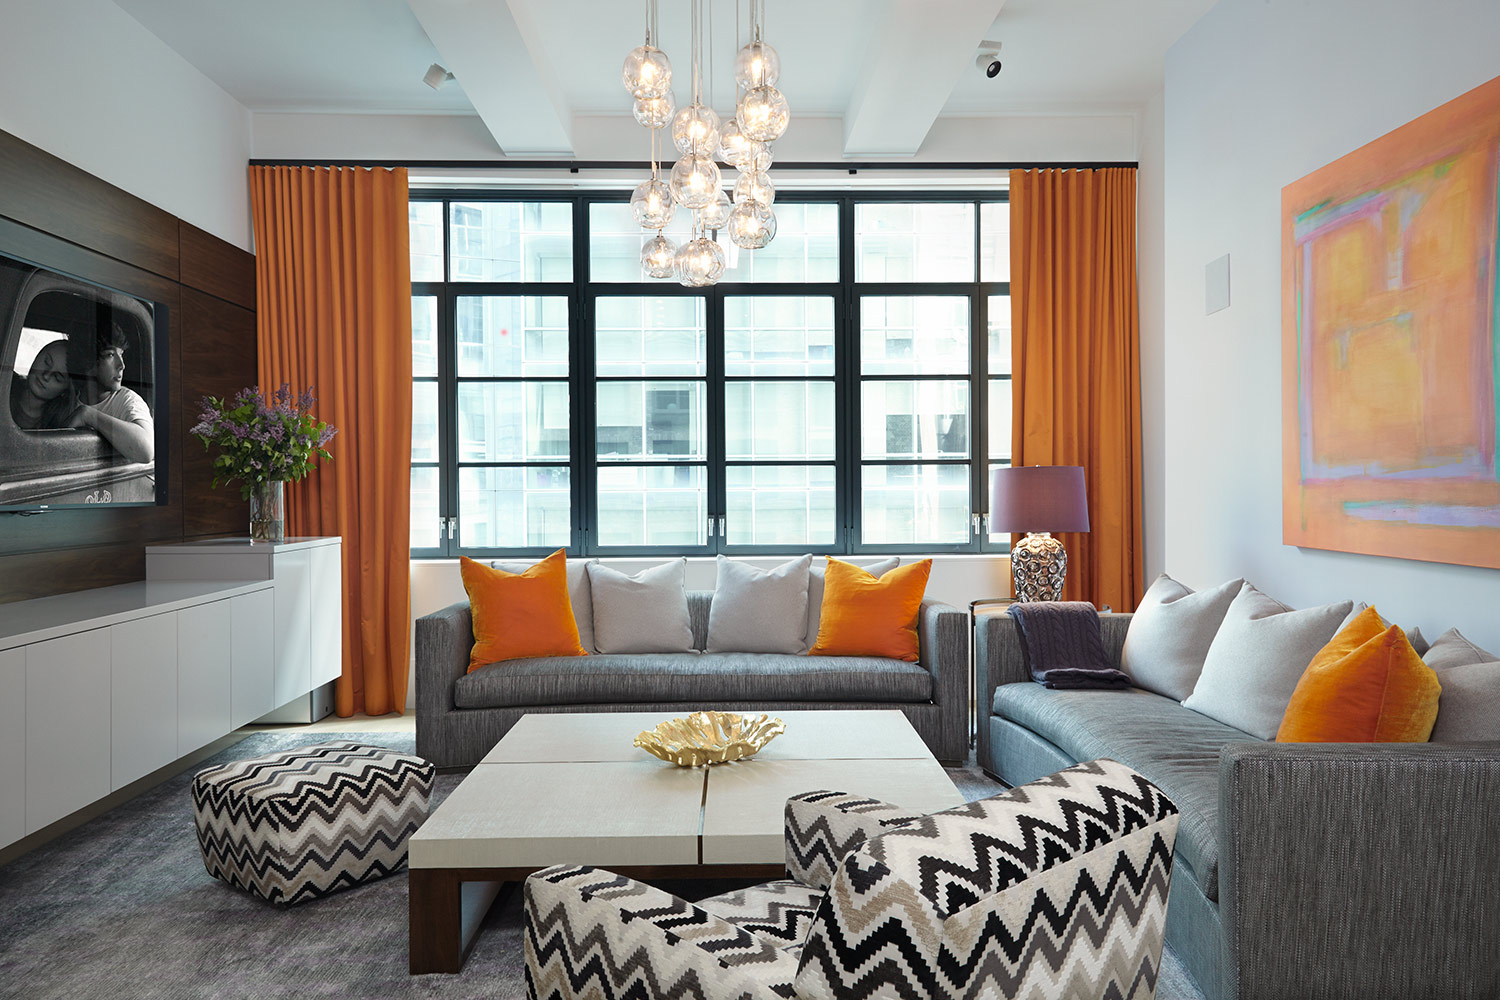 Evelyn Benatar New York Interior Design Huys Building CIty Living